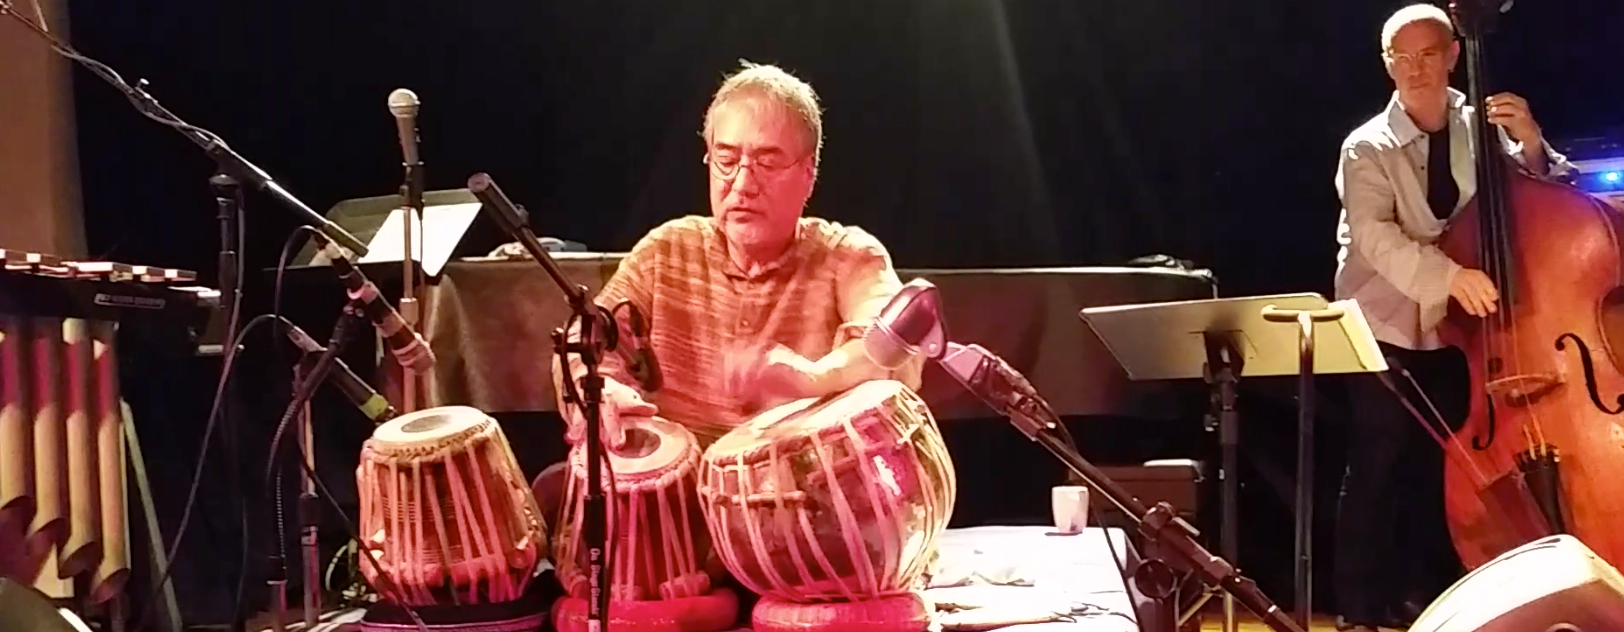 Ray on Tabla 2014